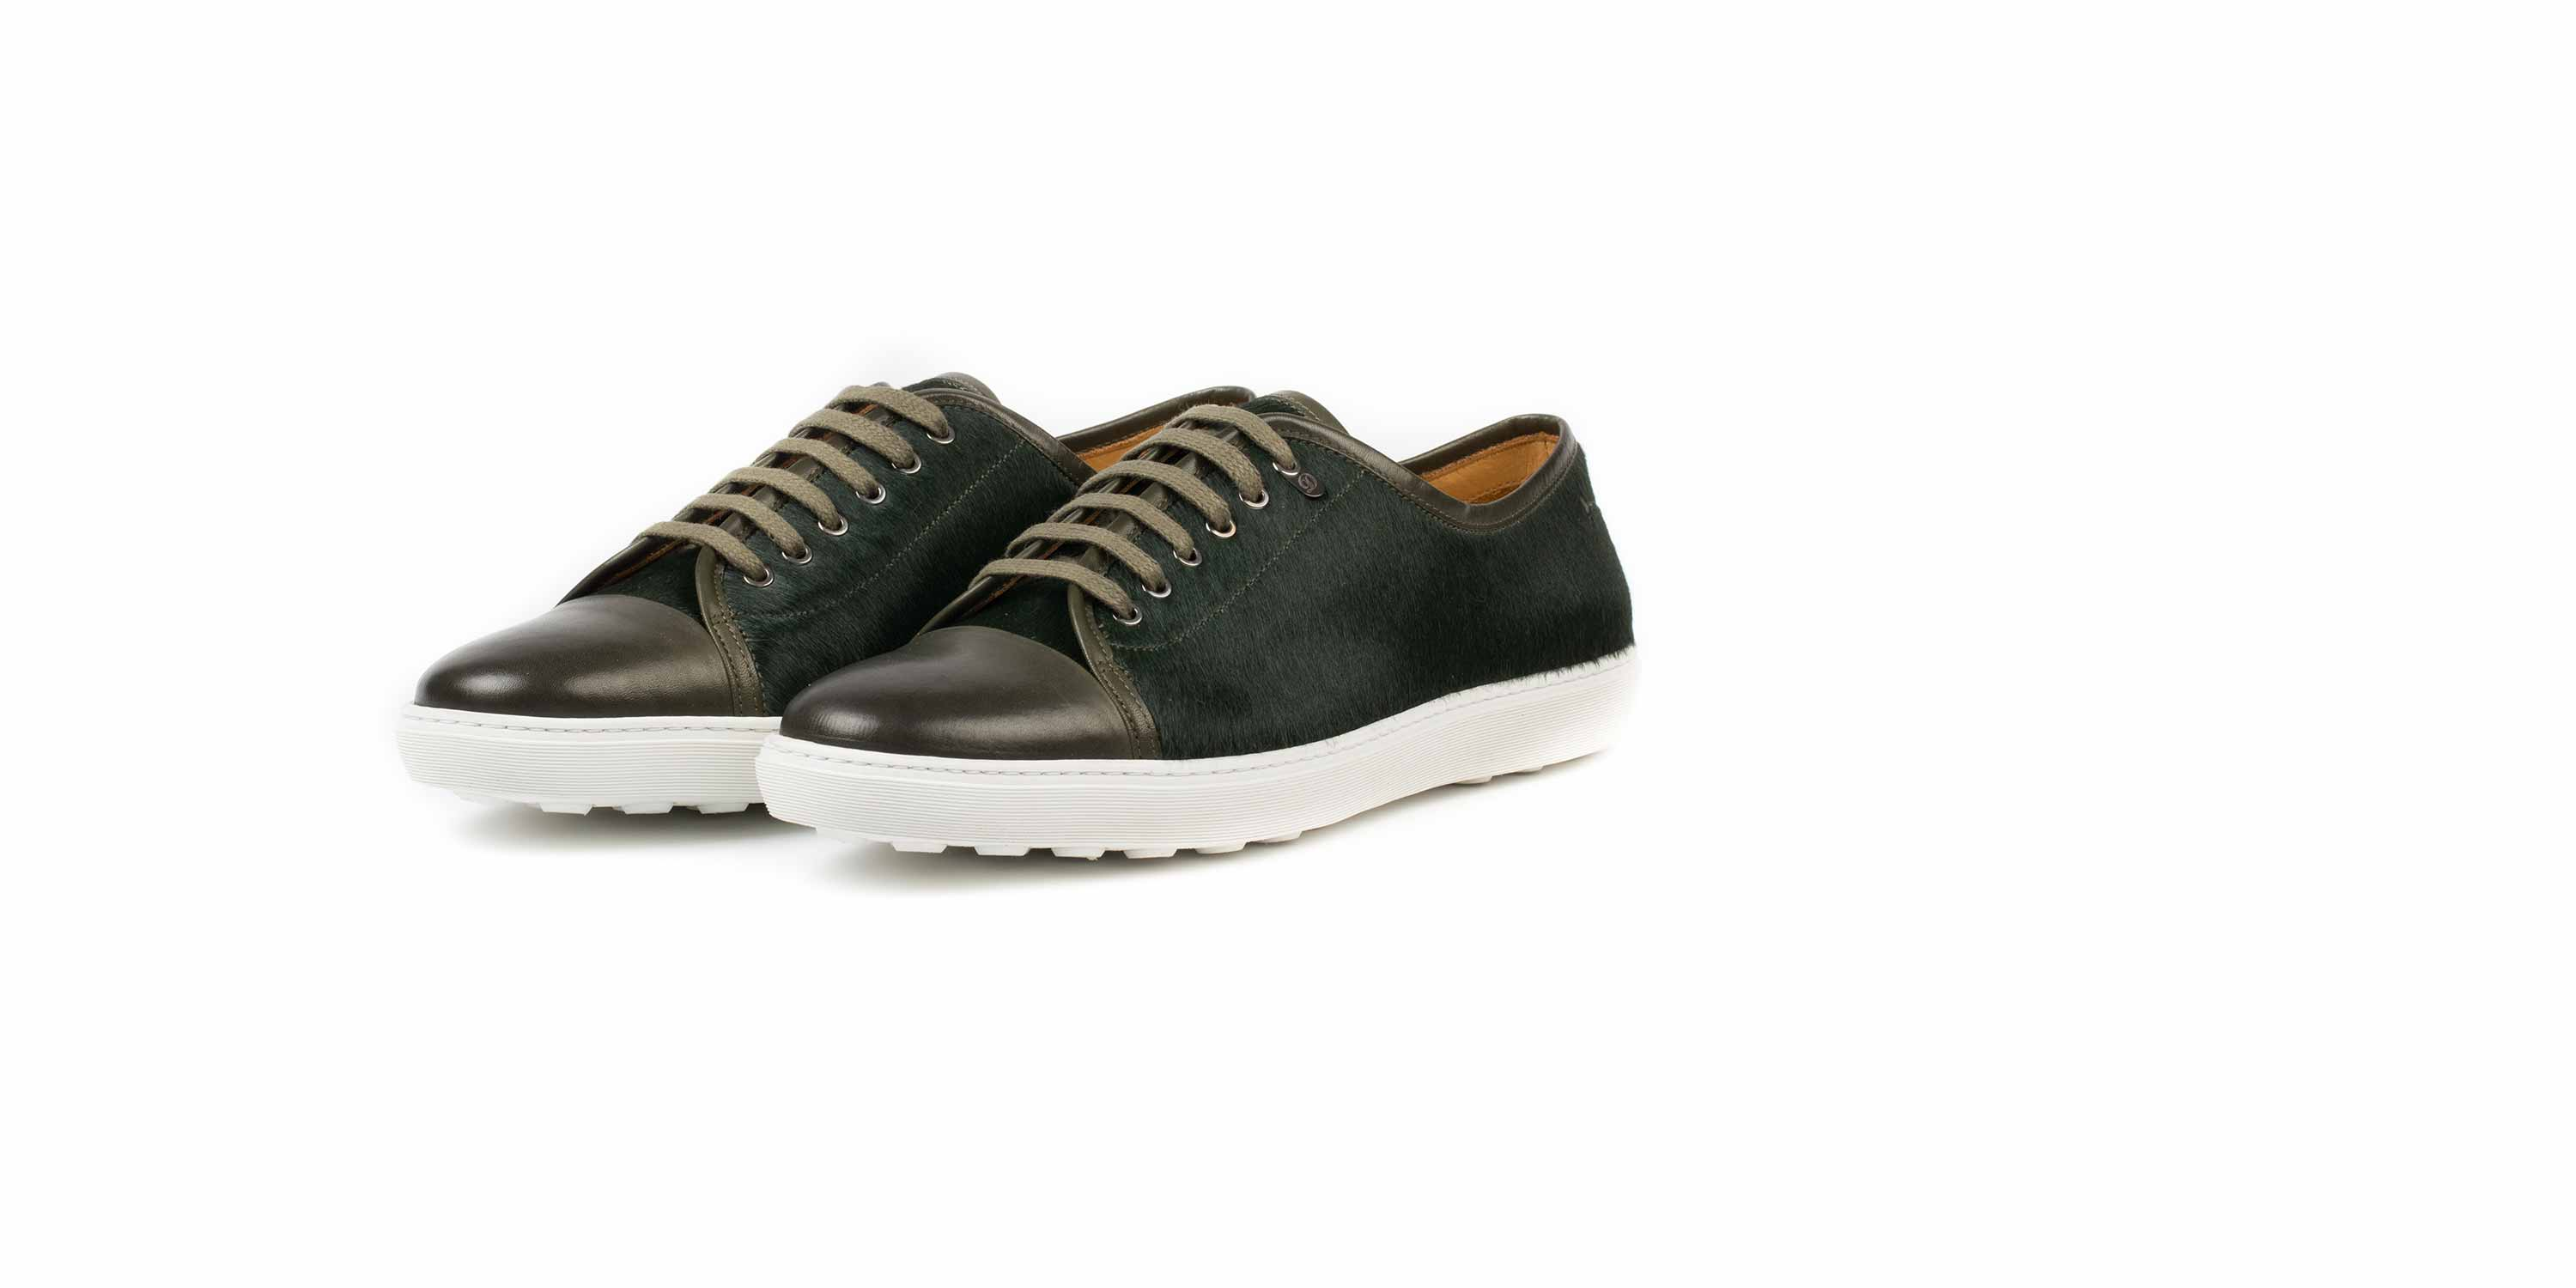 01_Redchurch-Sneaker_Dark-Green